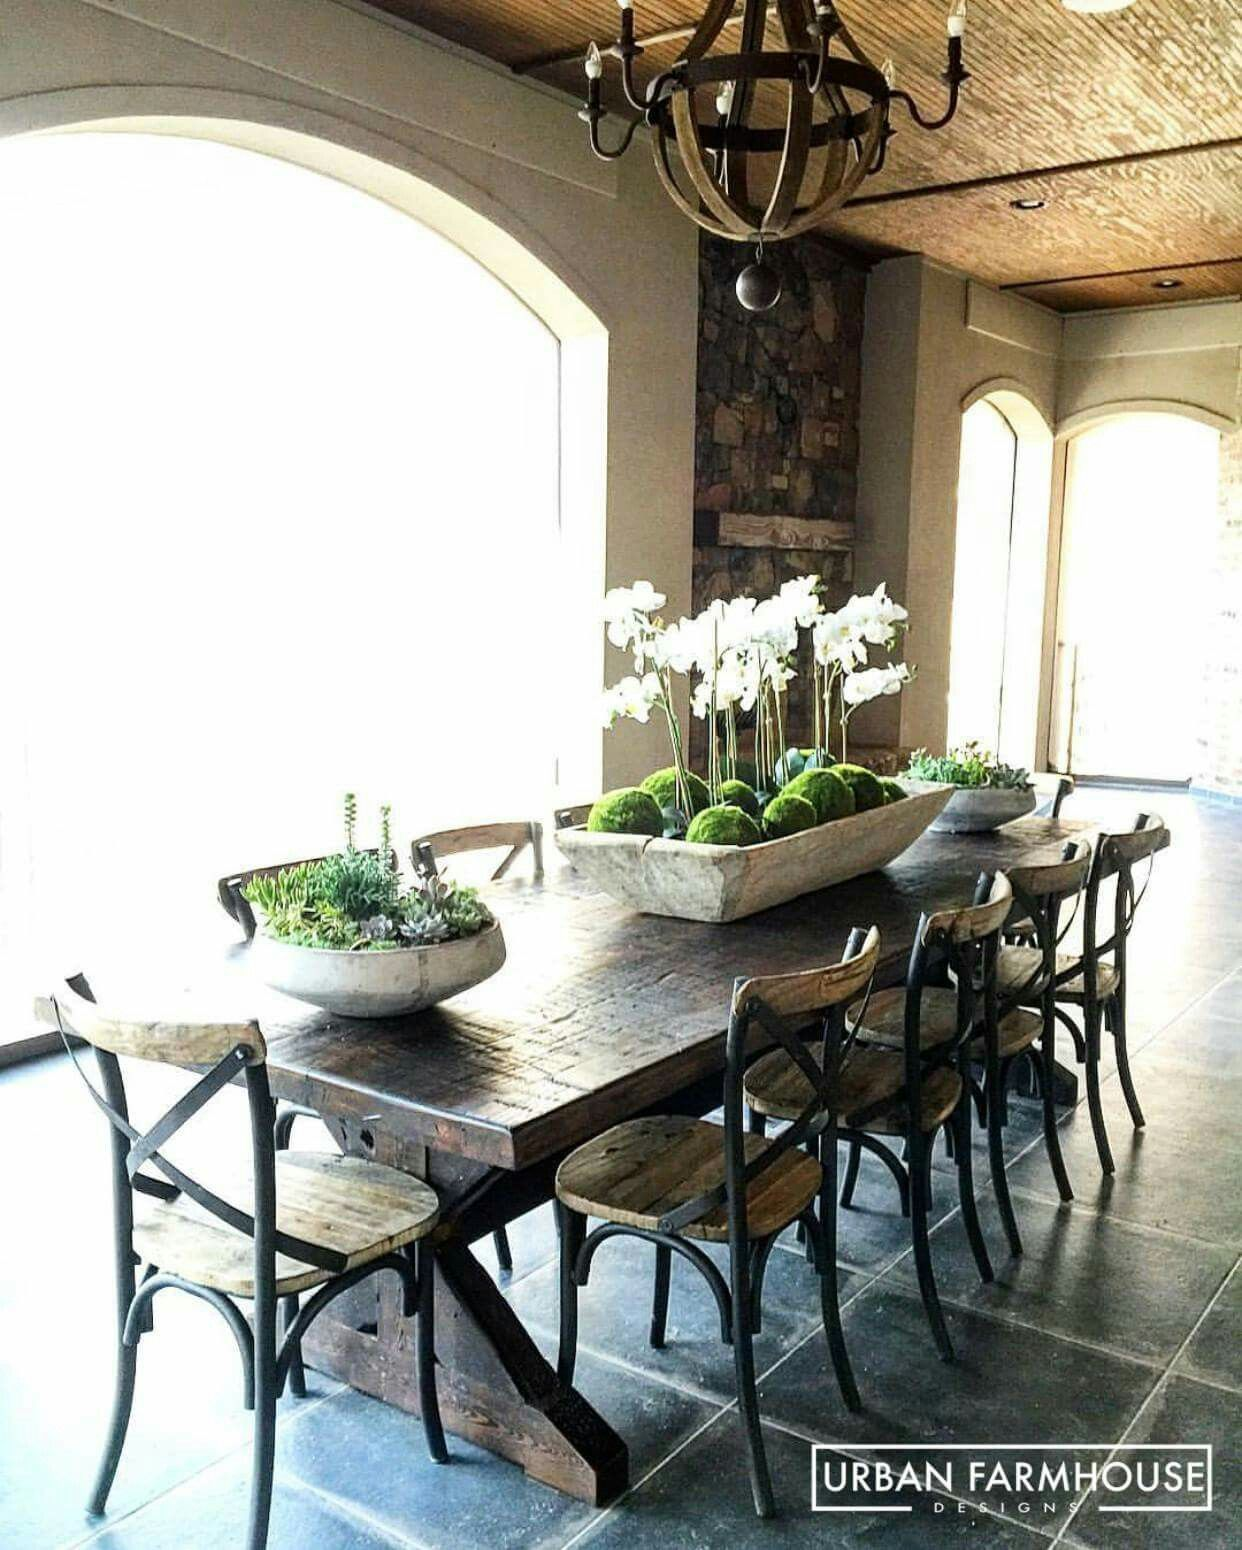 Pin By Trucy Baker On Decorating Ideas In 2019 Urban